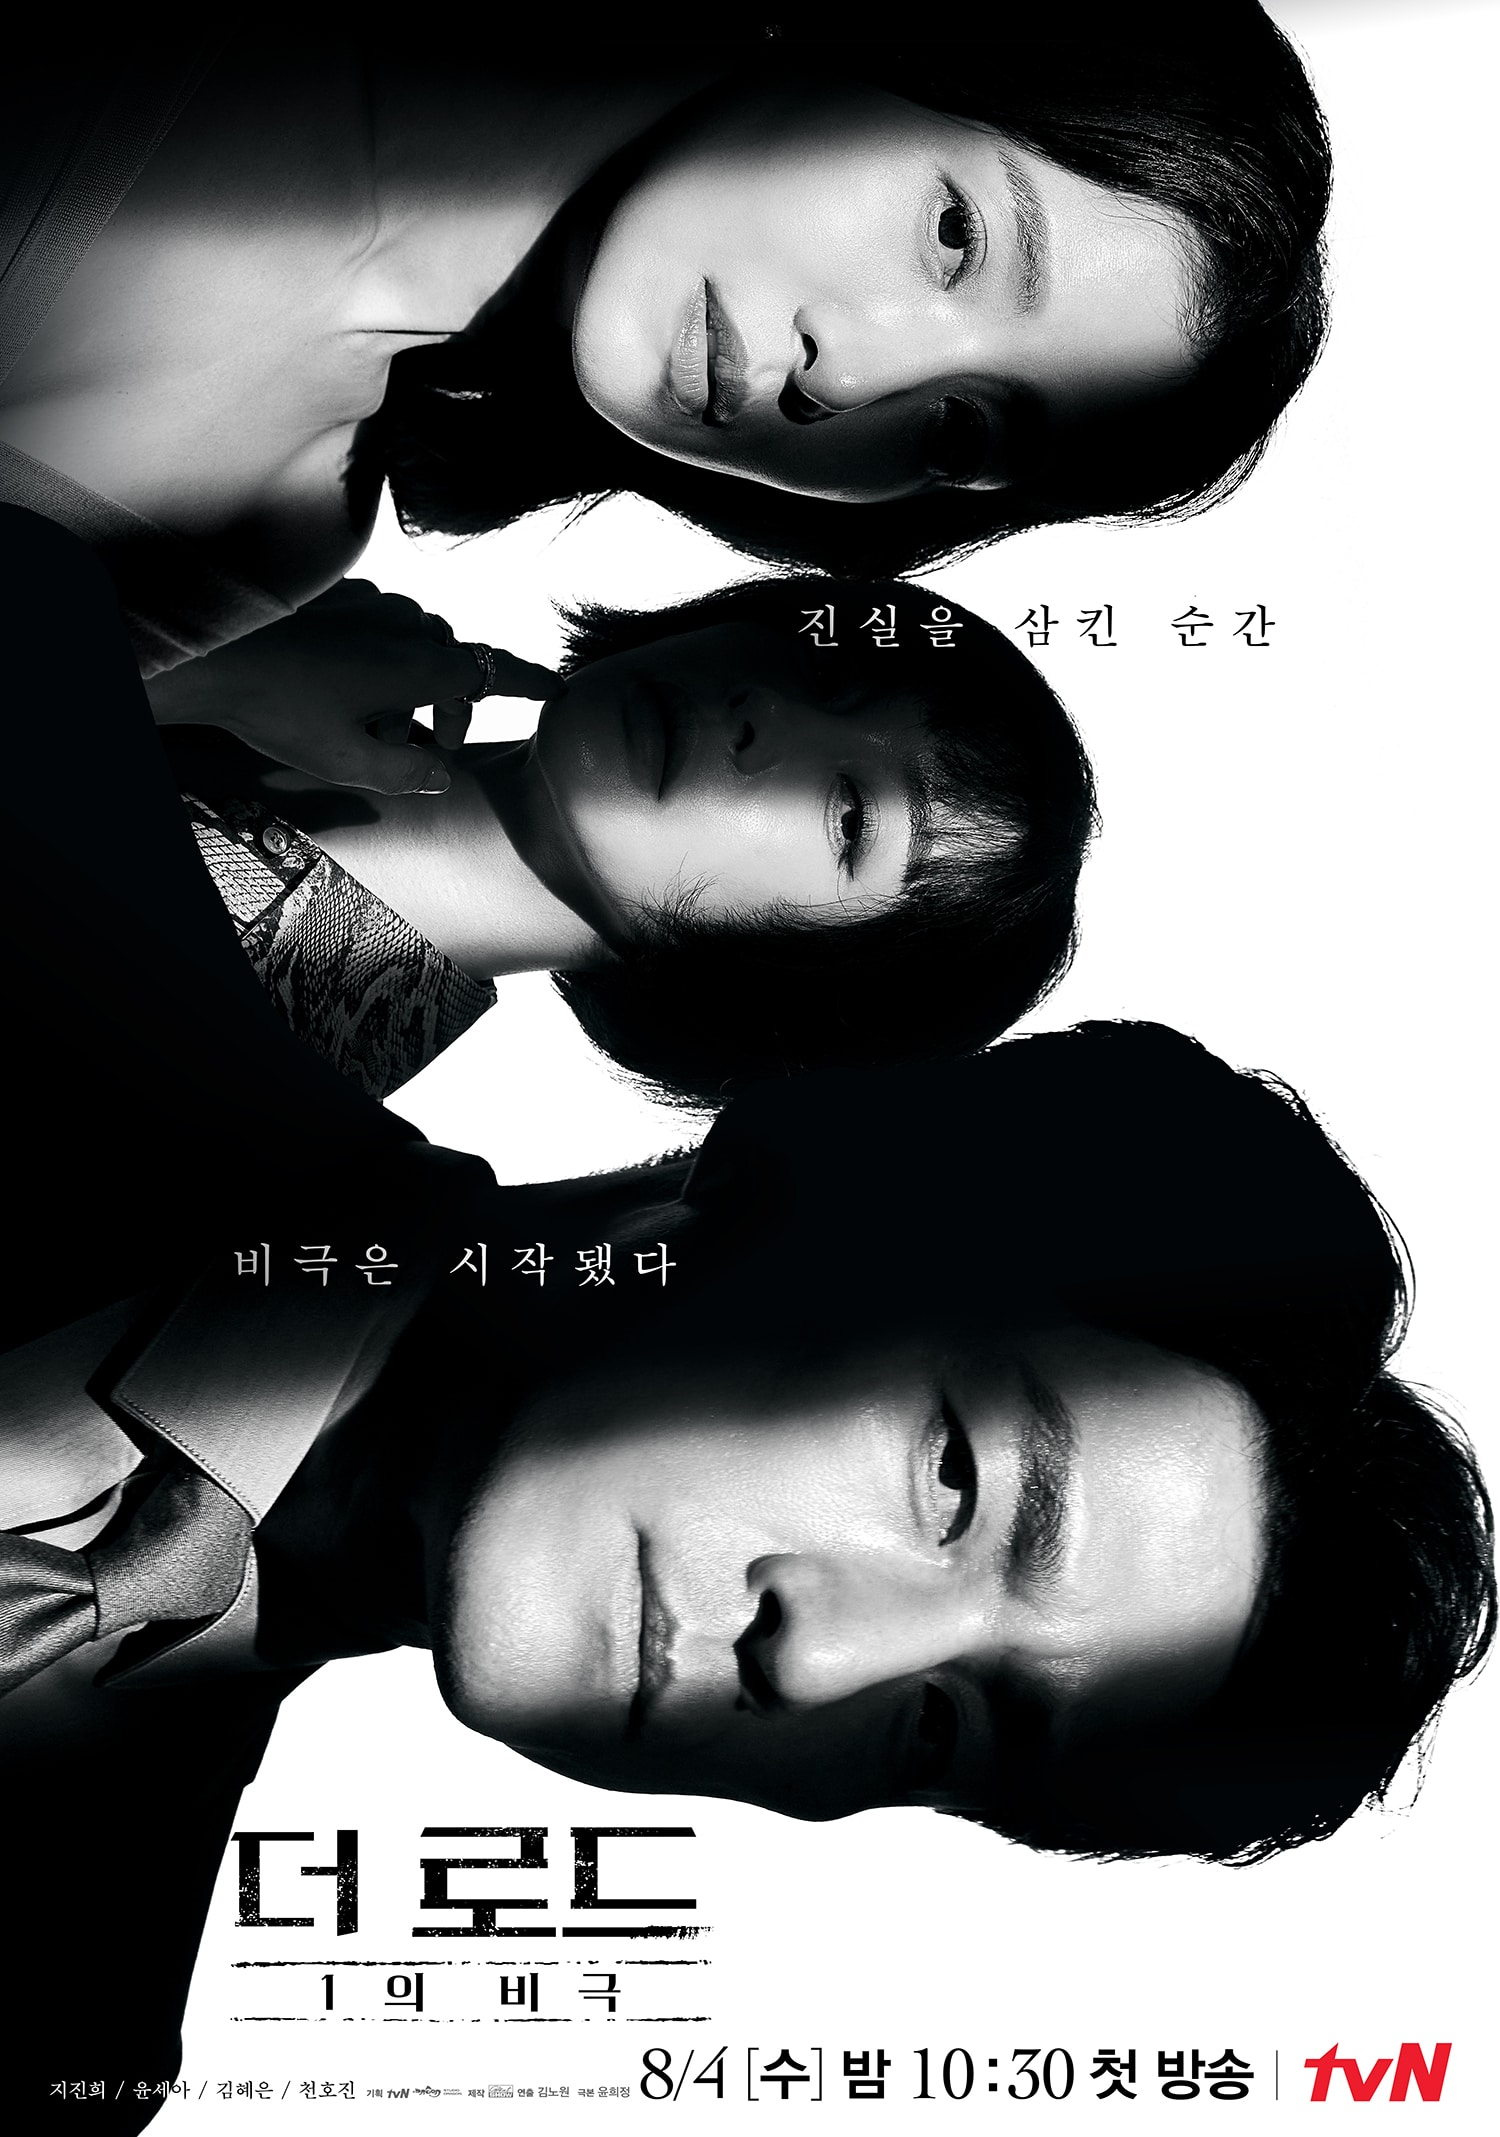 The Road: Tragedy of One - 더 로드: 1의 비극